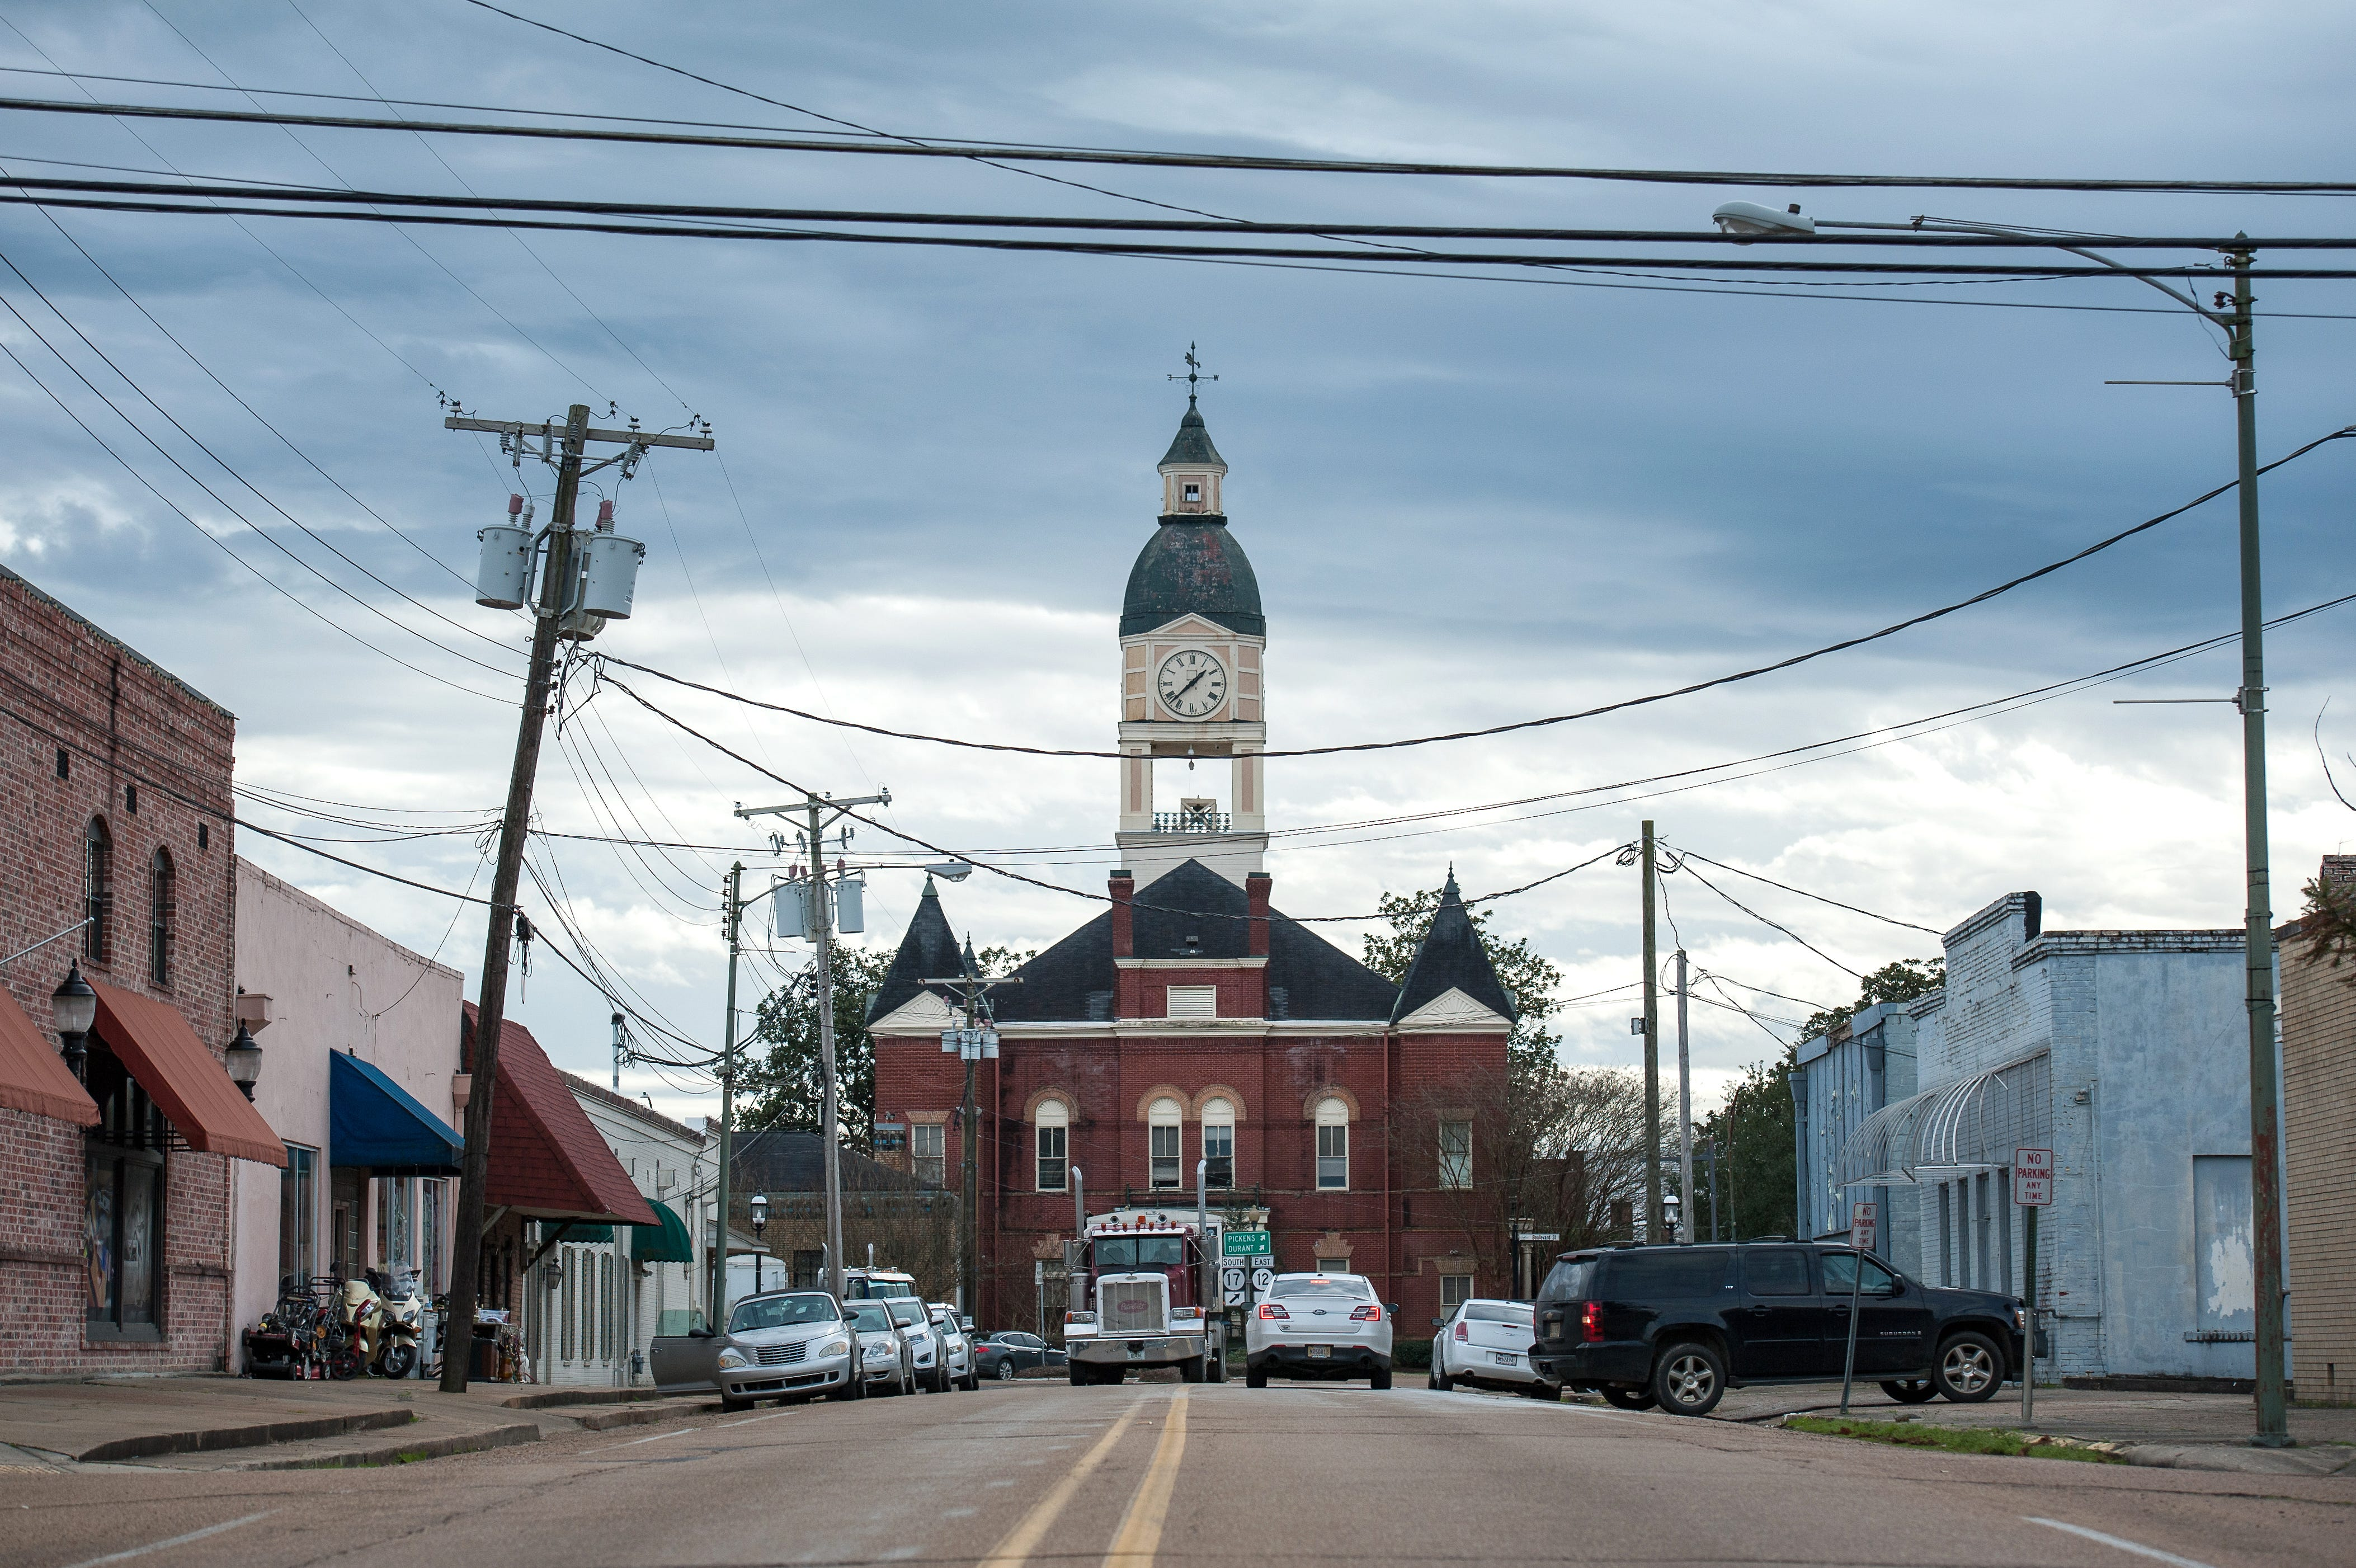 The town square anchors downtown Lexington. Despite the county's prominent role in the Civil Rights Movement, mom and pop shops often see little foot traffic from tourists.